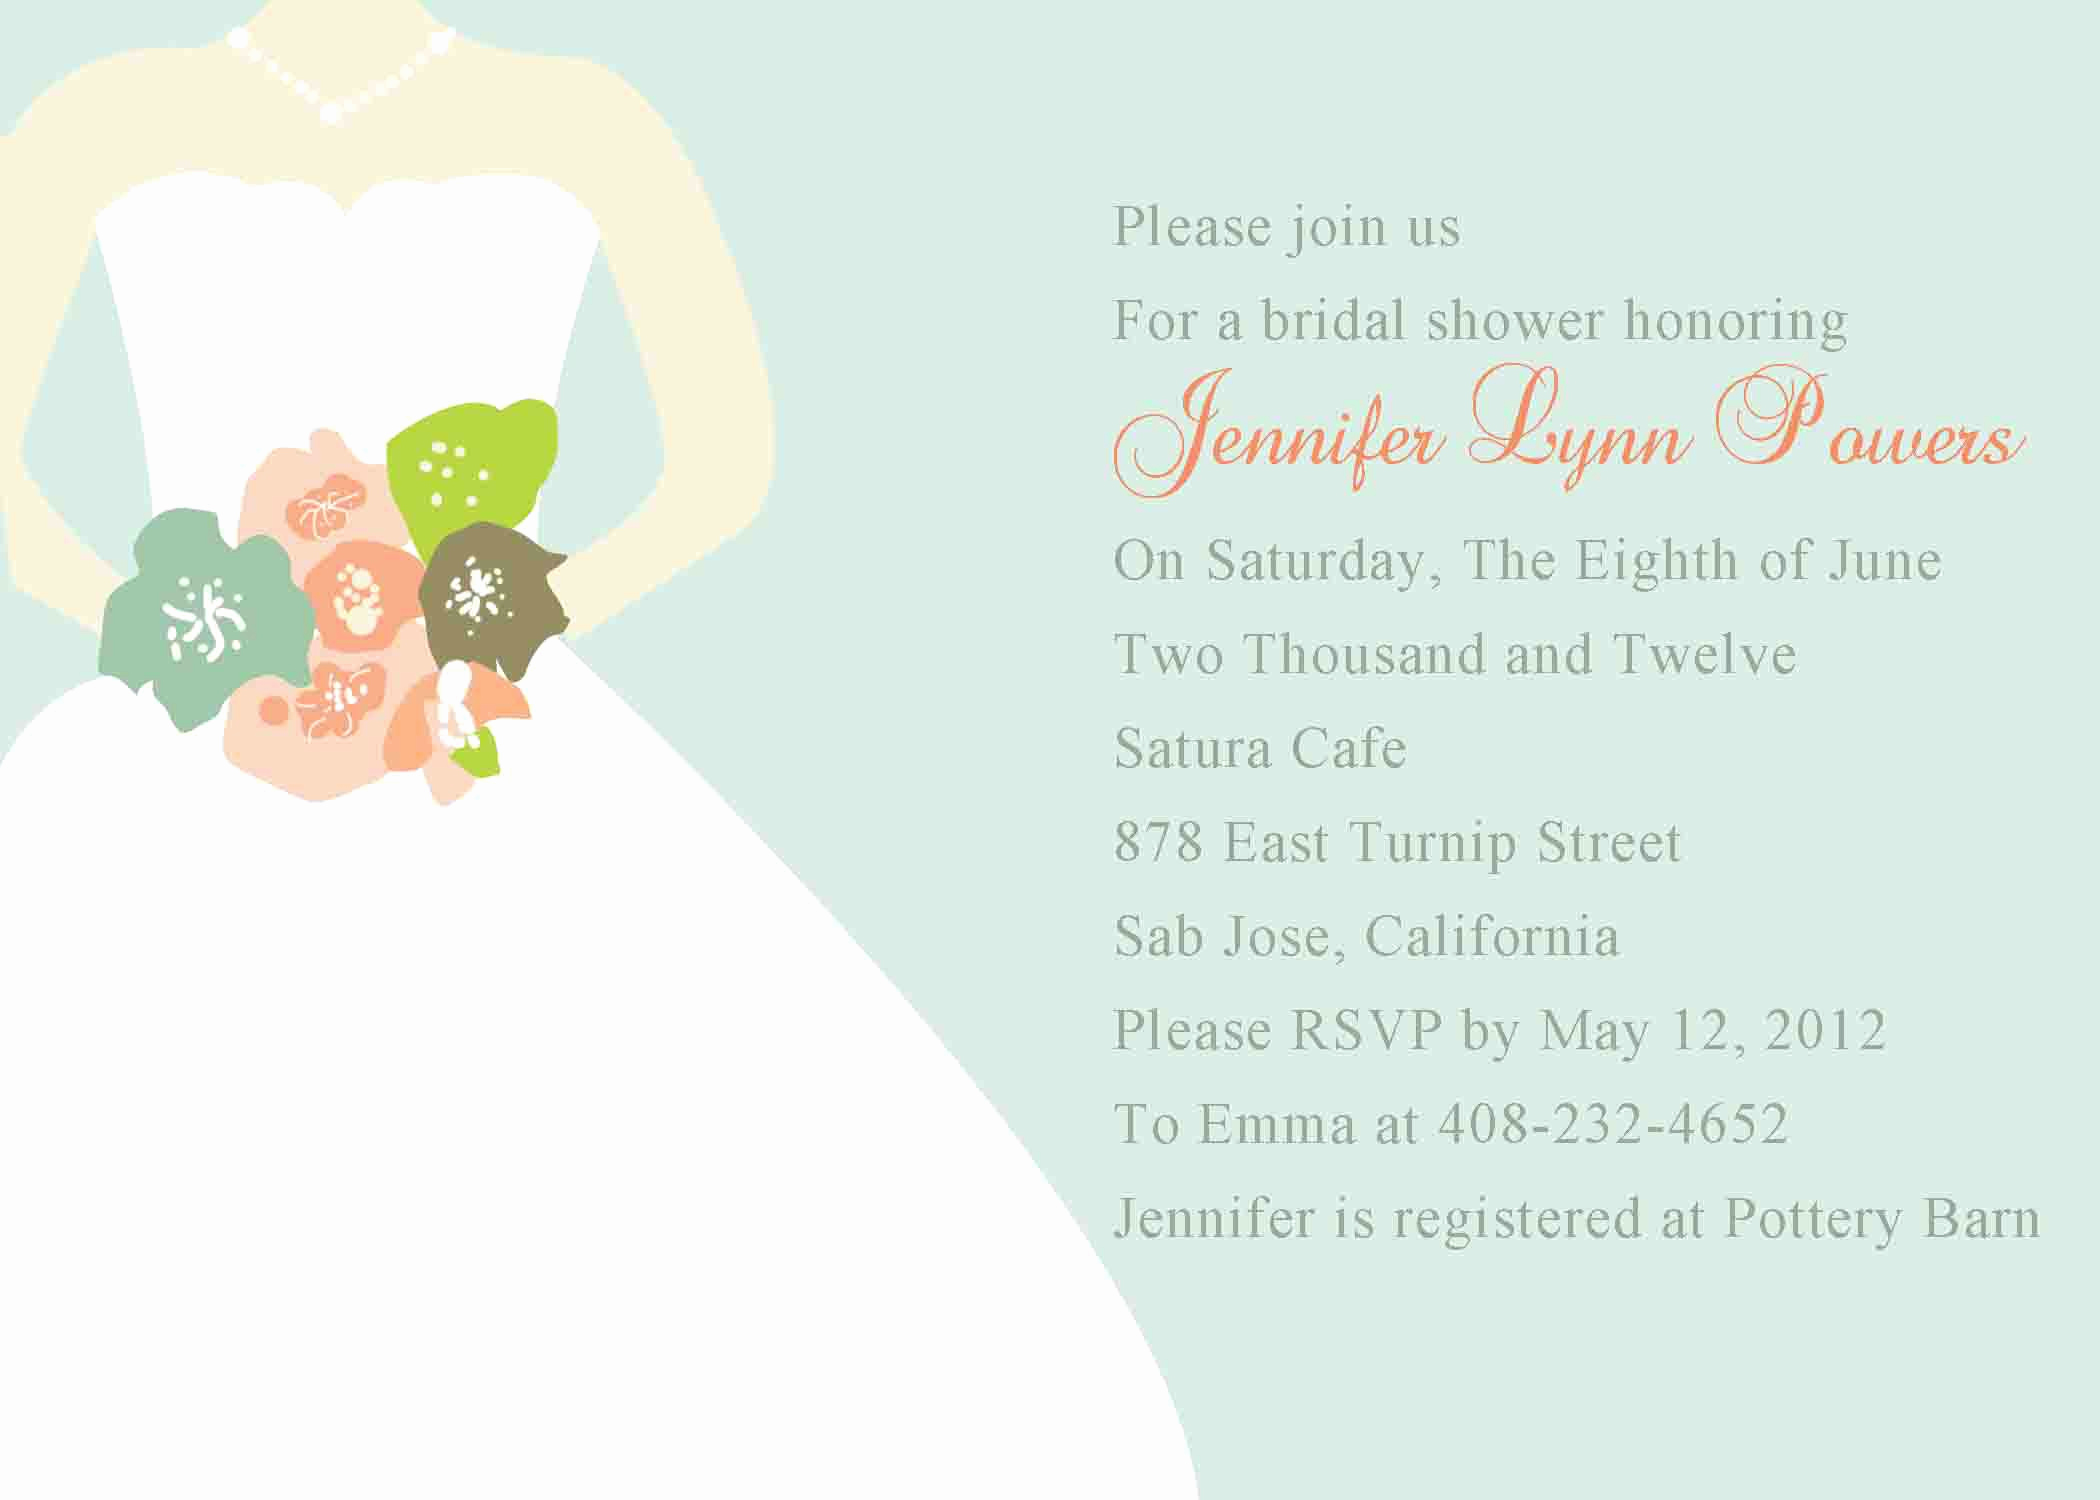 Bridal Shower Invitation Template Elegant Bridal Shower Invitation Templates Bridal Shower